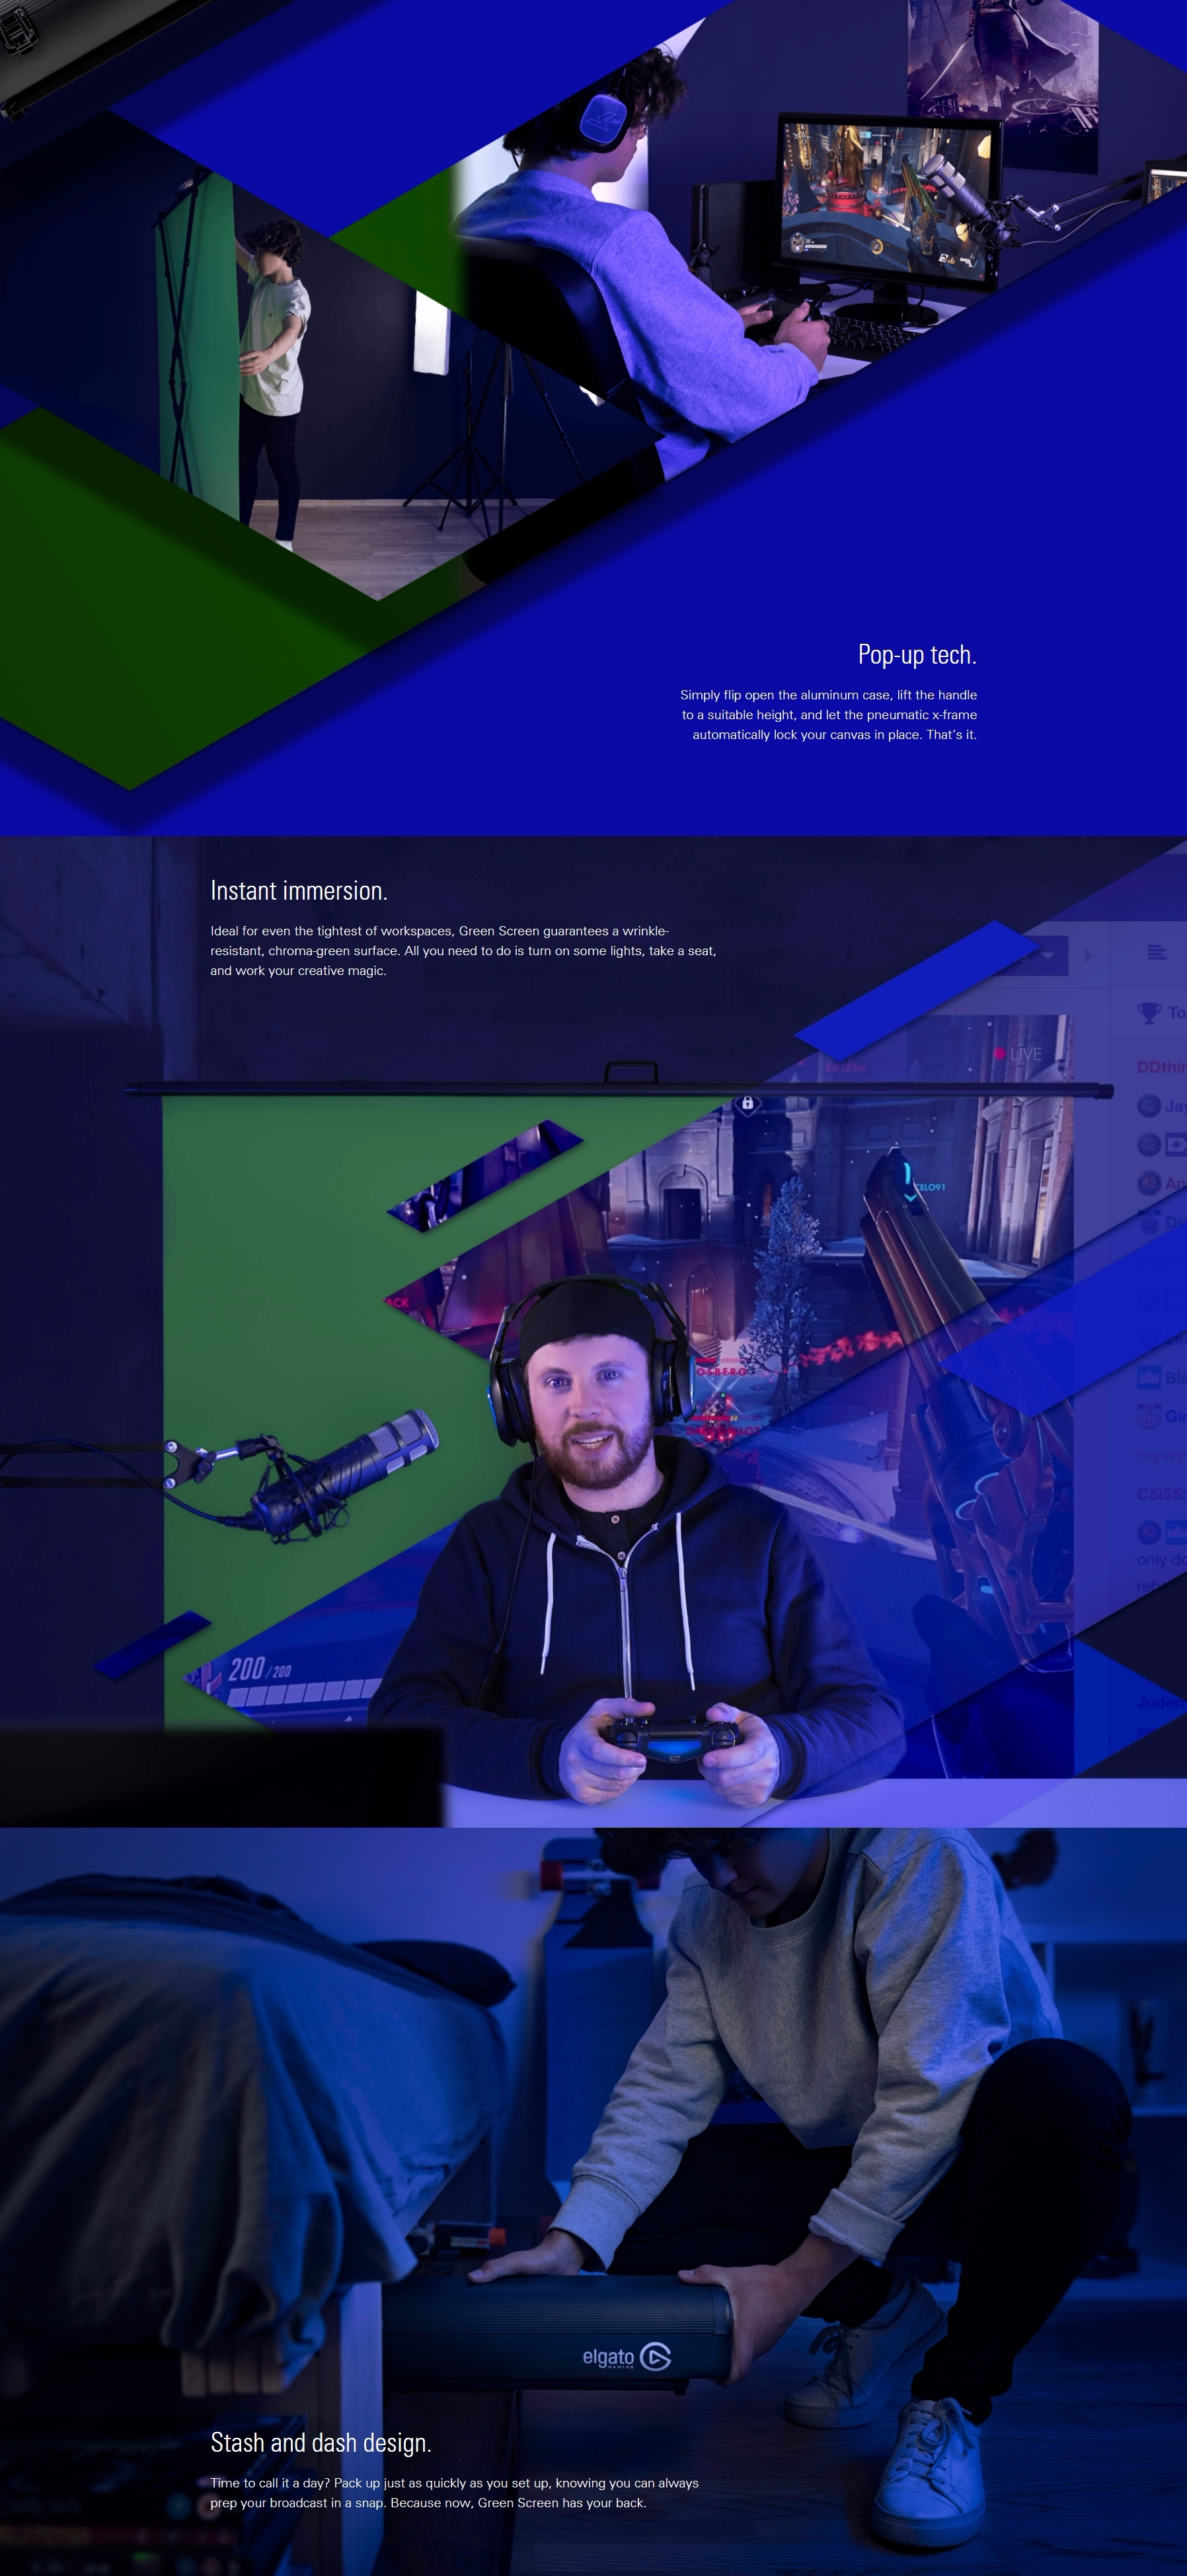 A large marketing image providing additional information about the product Elgato Collapsible Green Screen  - Additional alt info not provided